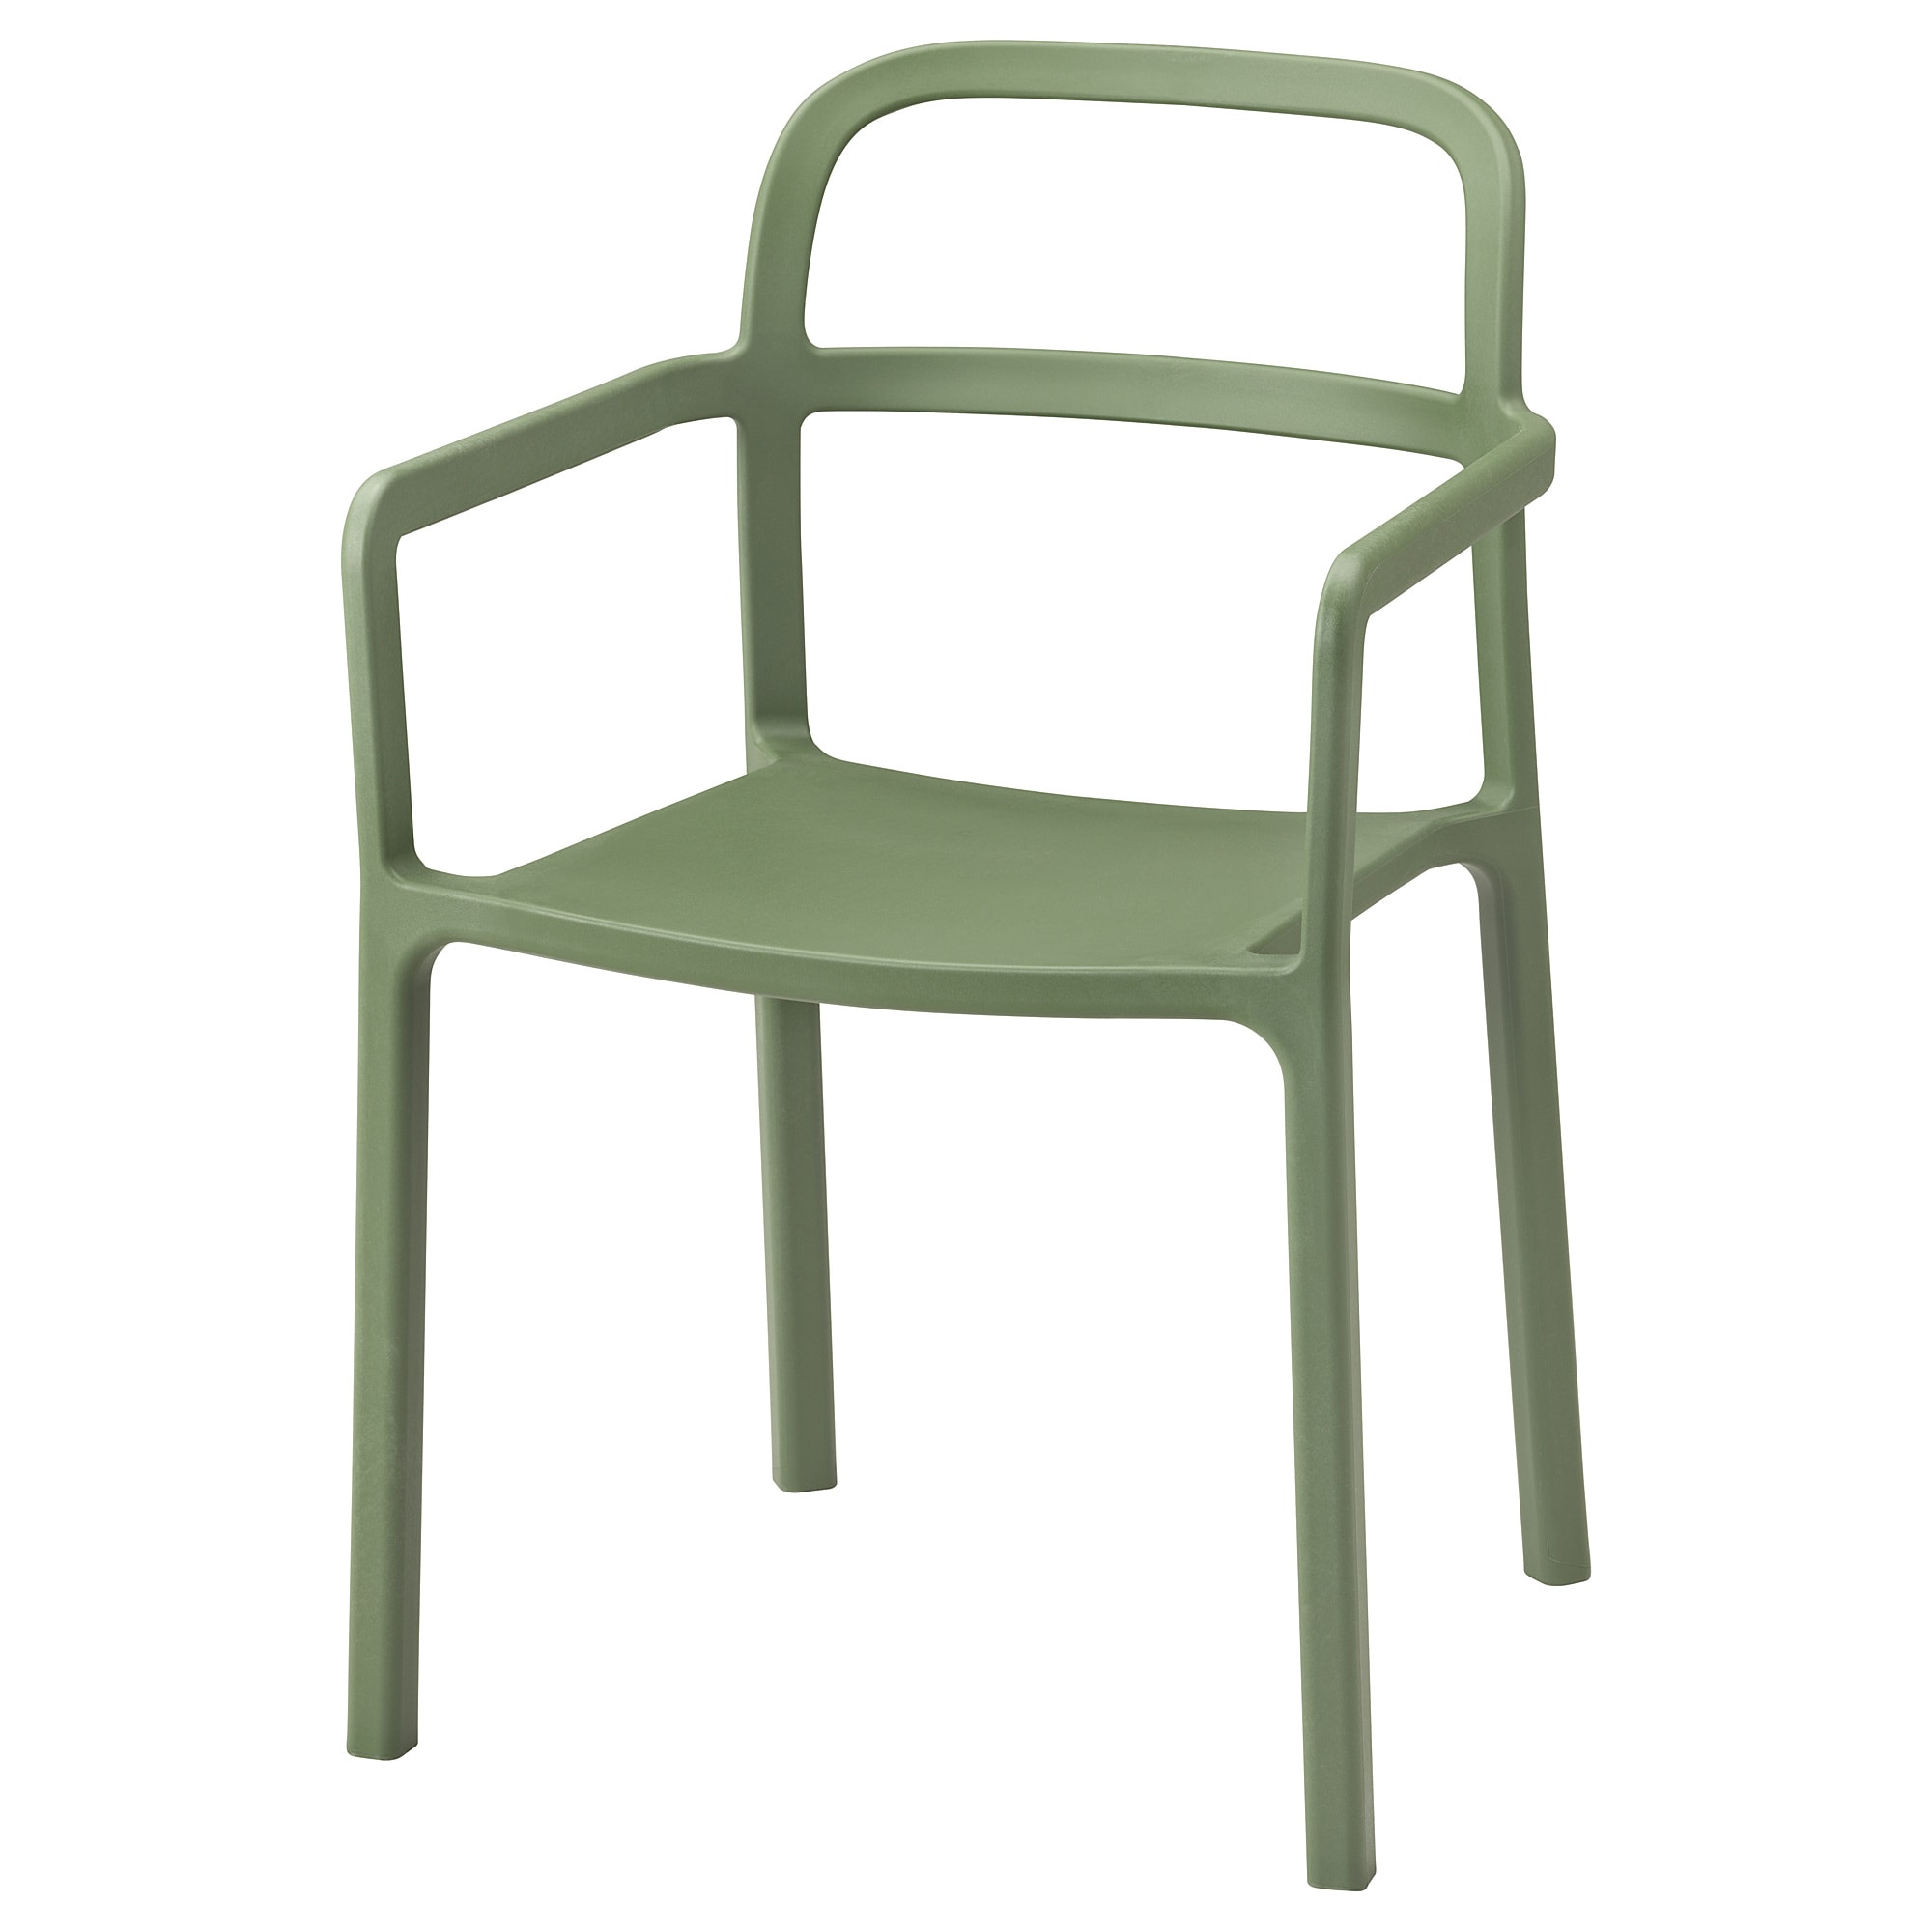 ypperlig armchair in outdoor ikea rh ikea com ikea outdoor furniture uk ikea outdoor furniture cushions